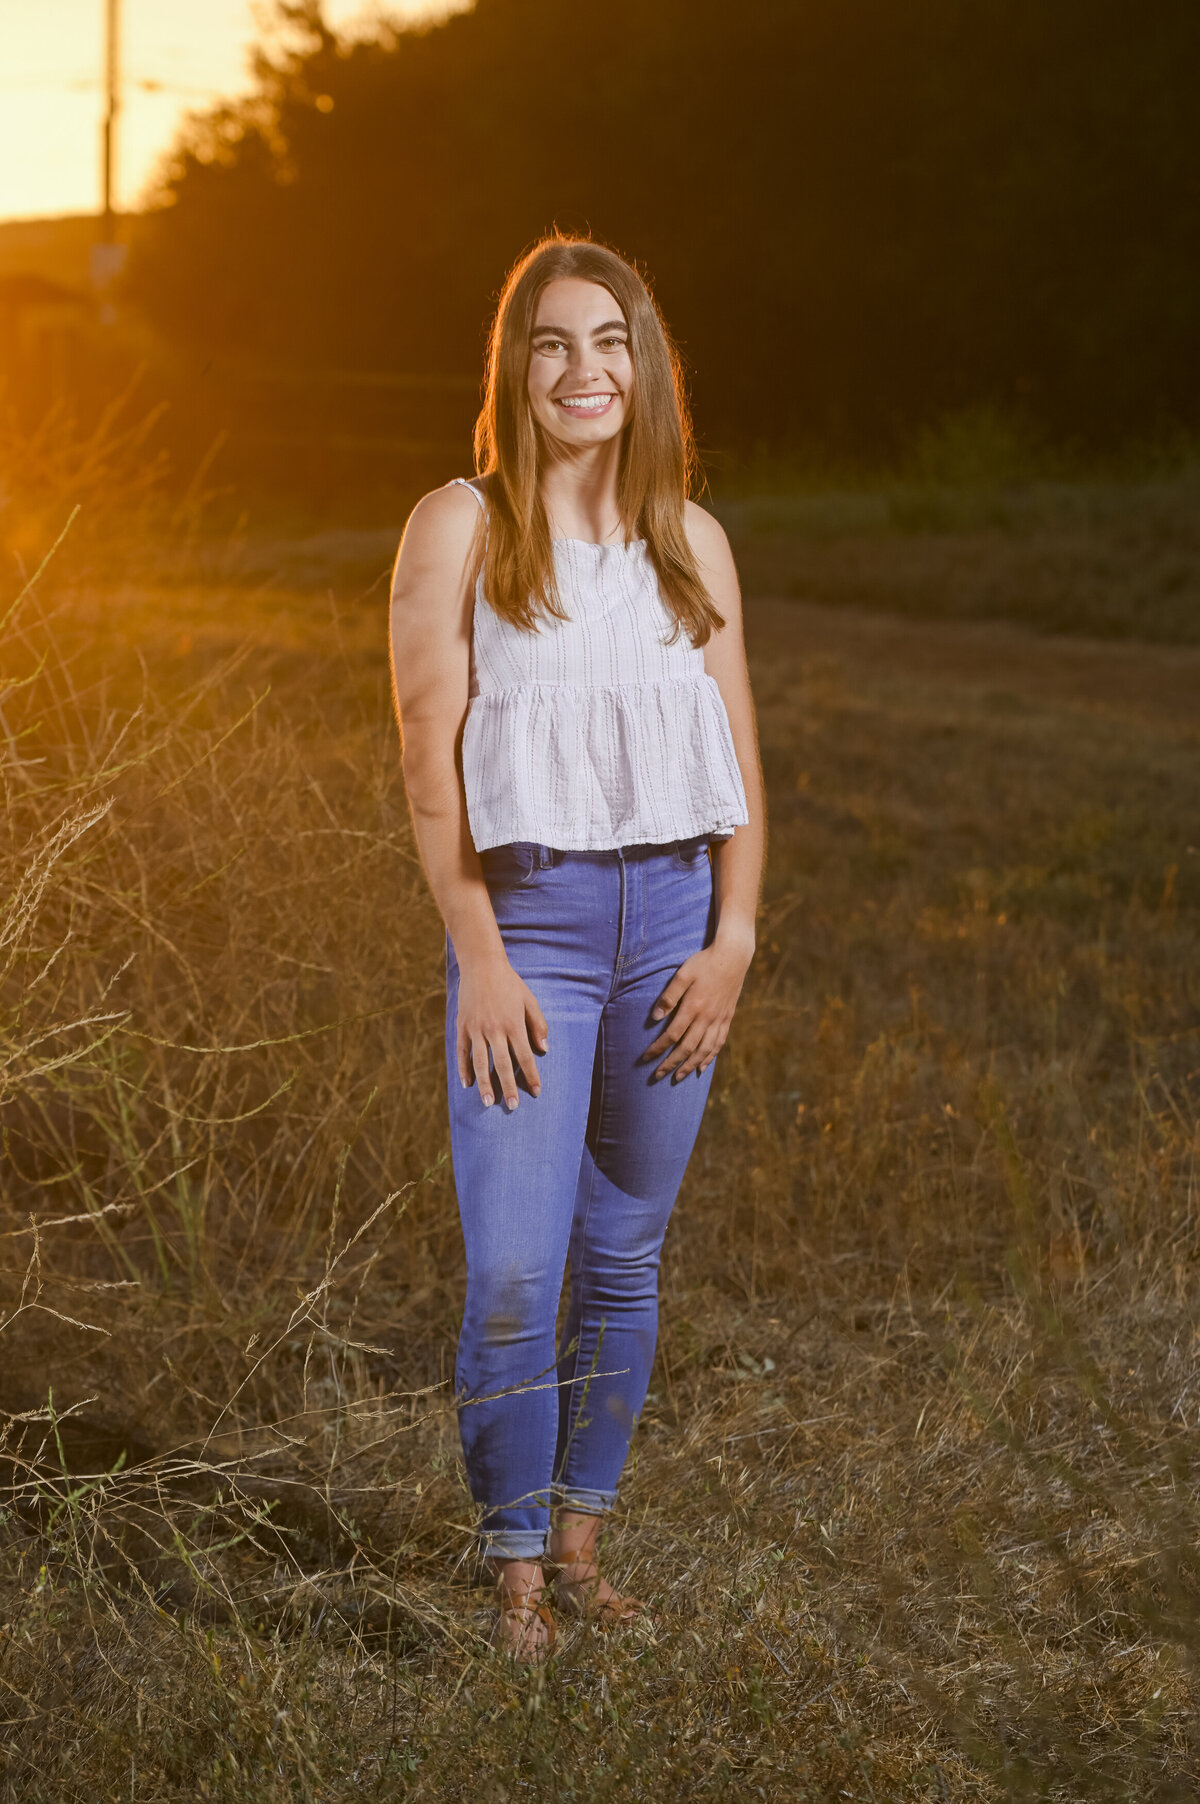 Poway-High-School-Senior-Photography-AB_019